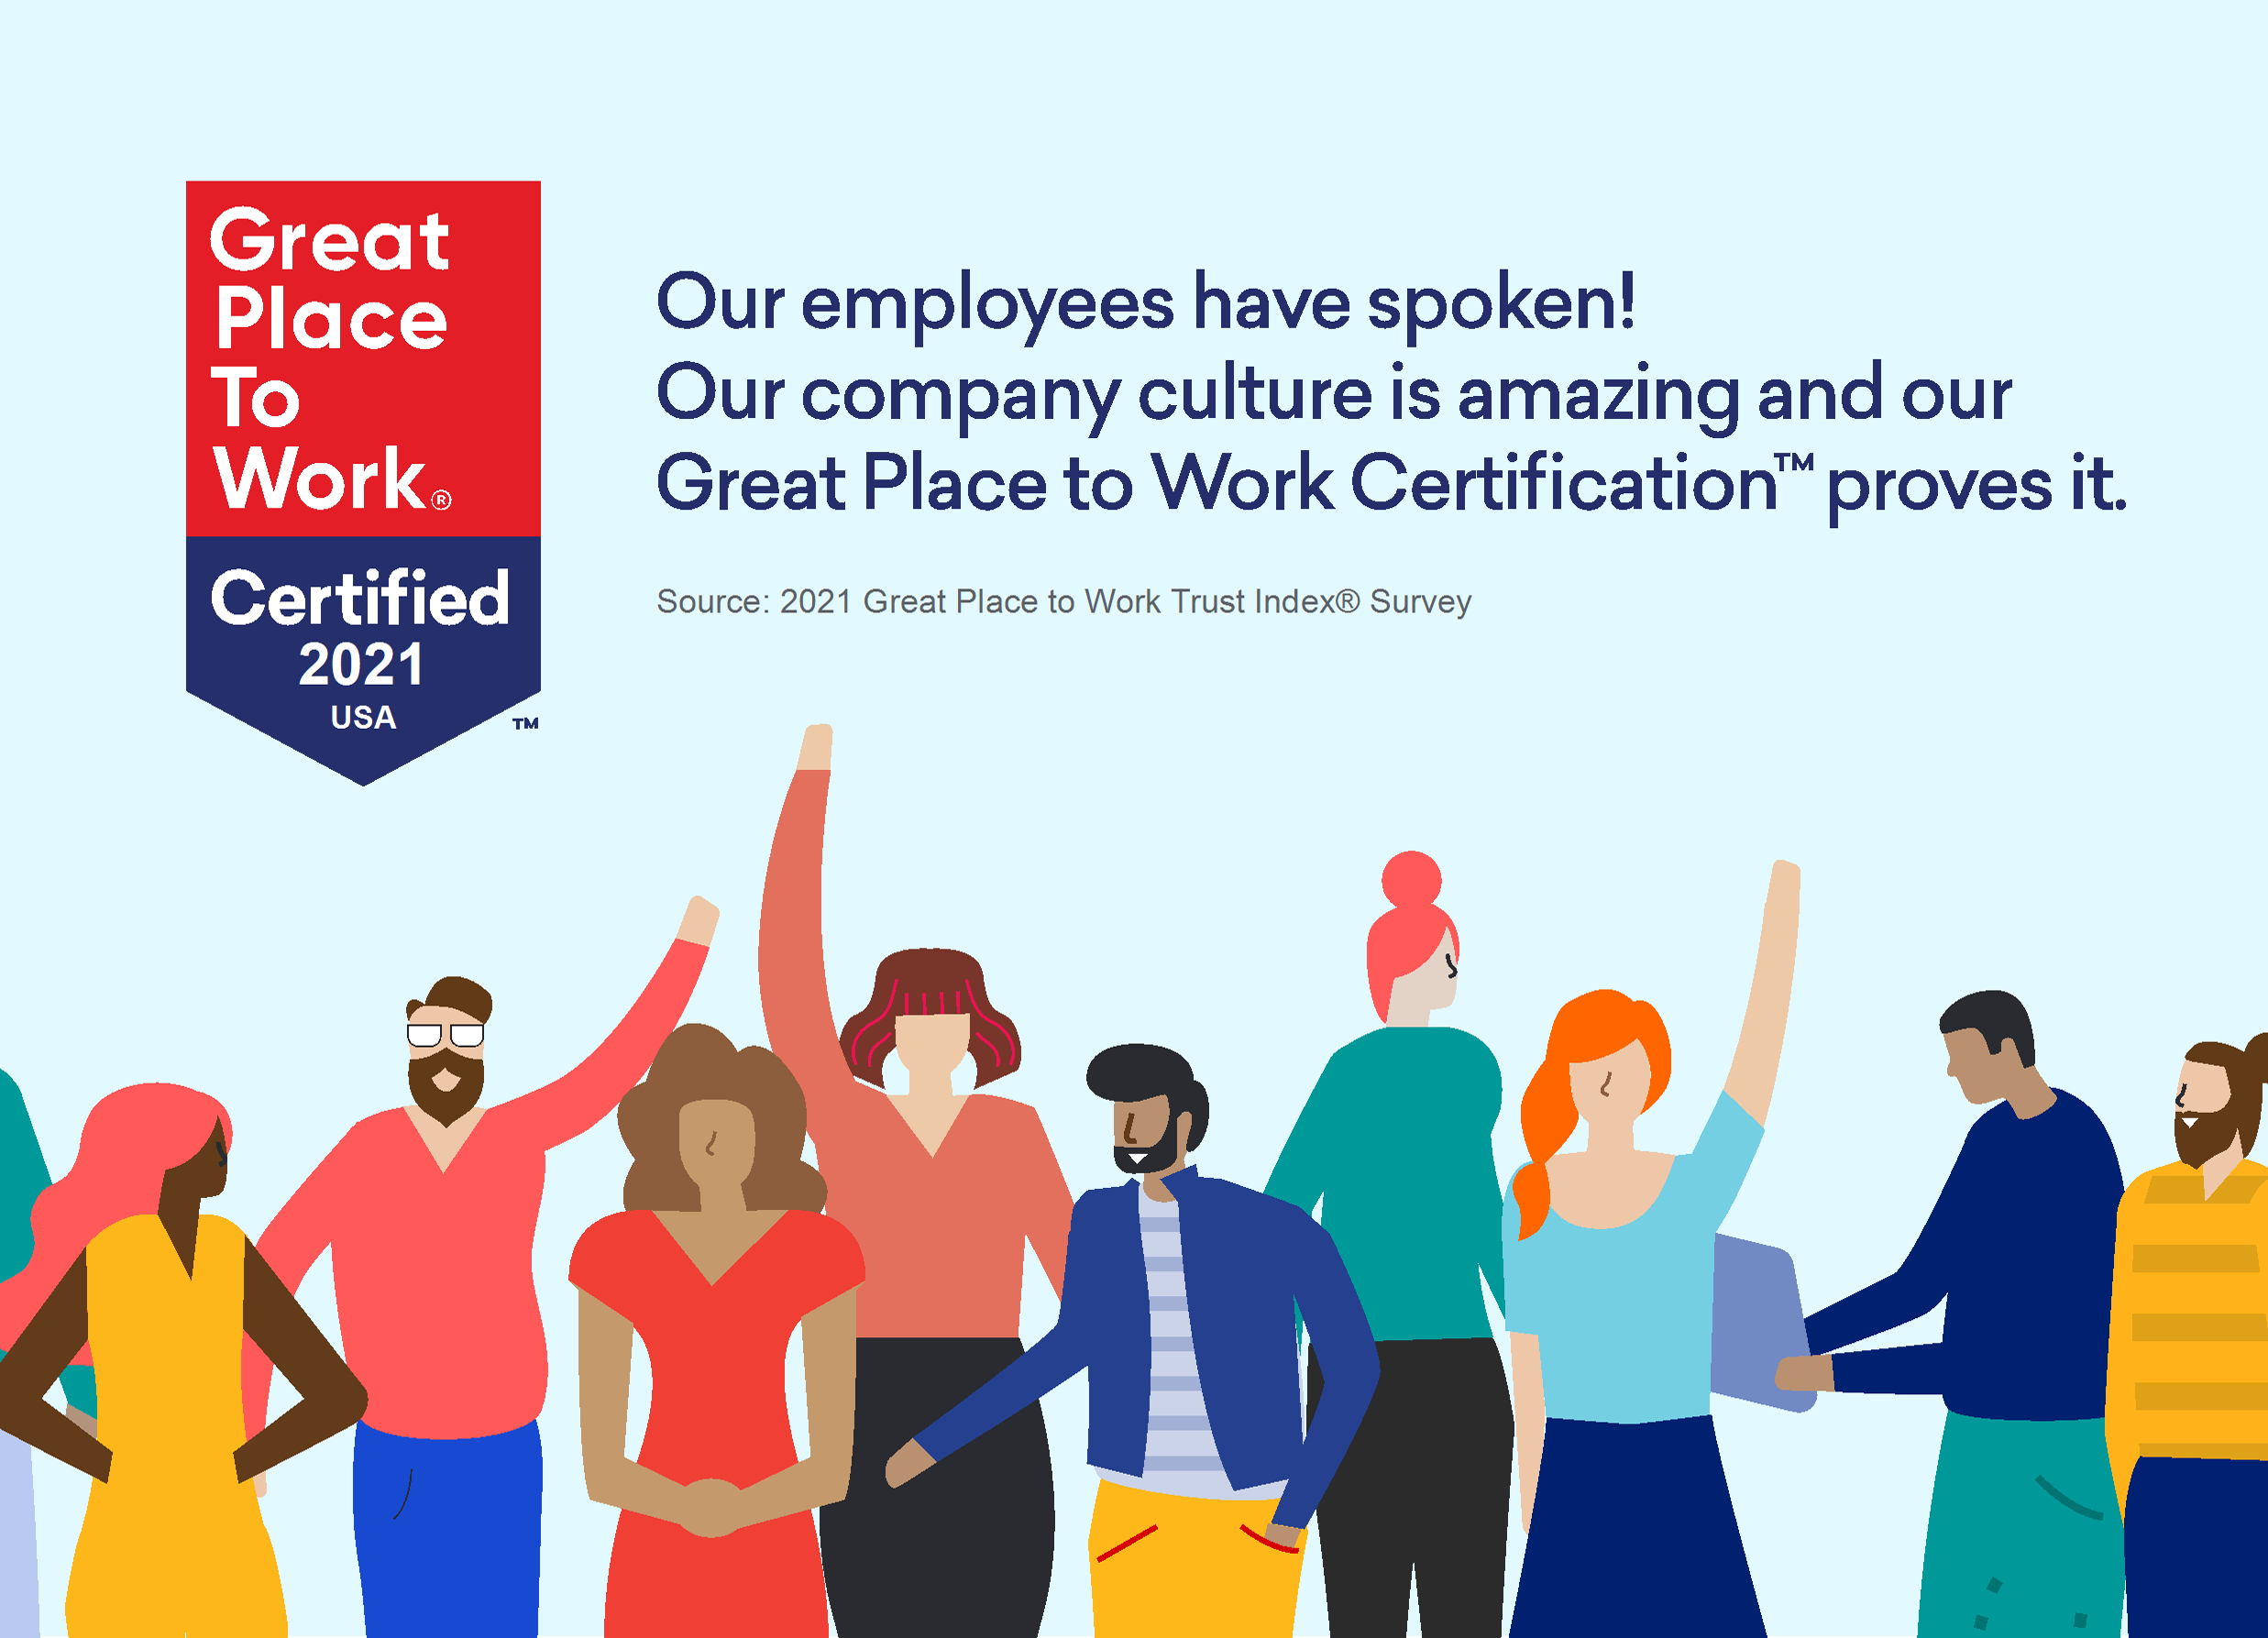 Graphic of Great Place To Work Certification seal along with line of characters celebrating